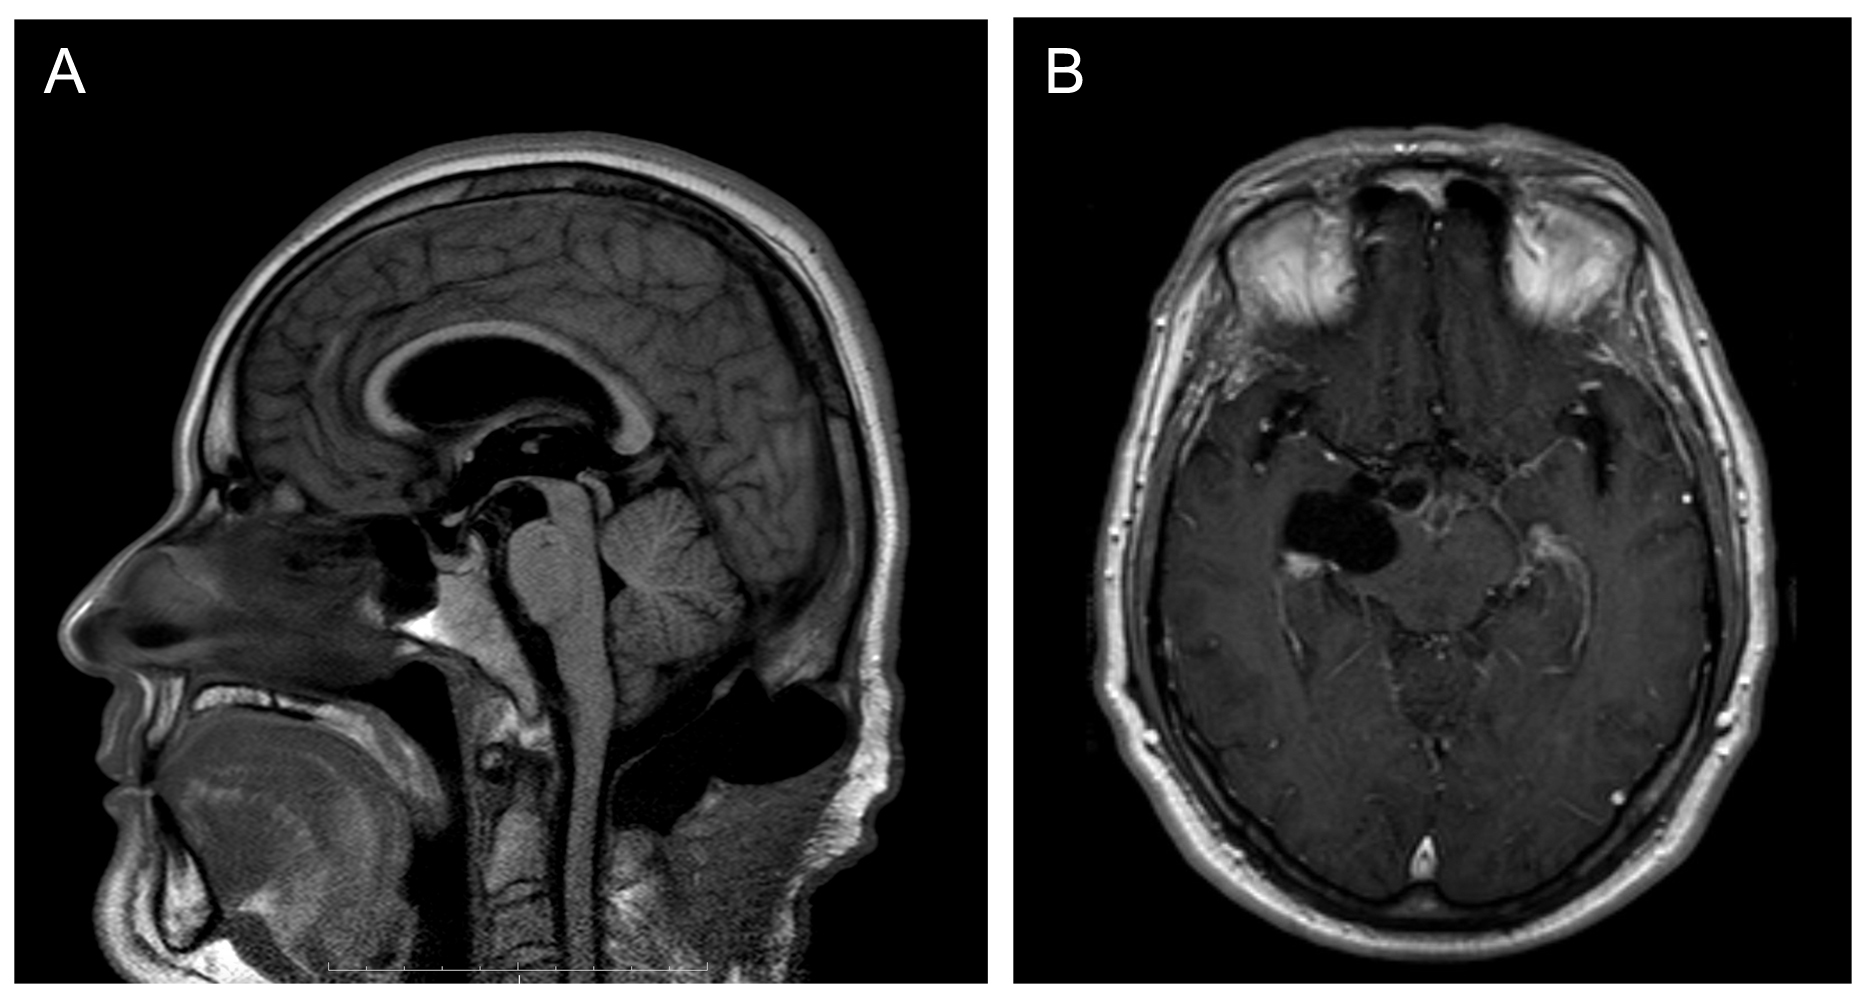 The development of hydrocephalus with reaccumulation of fluid in the surgical site